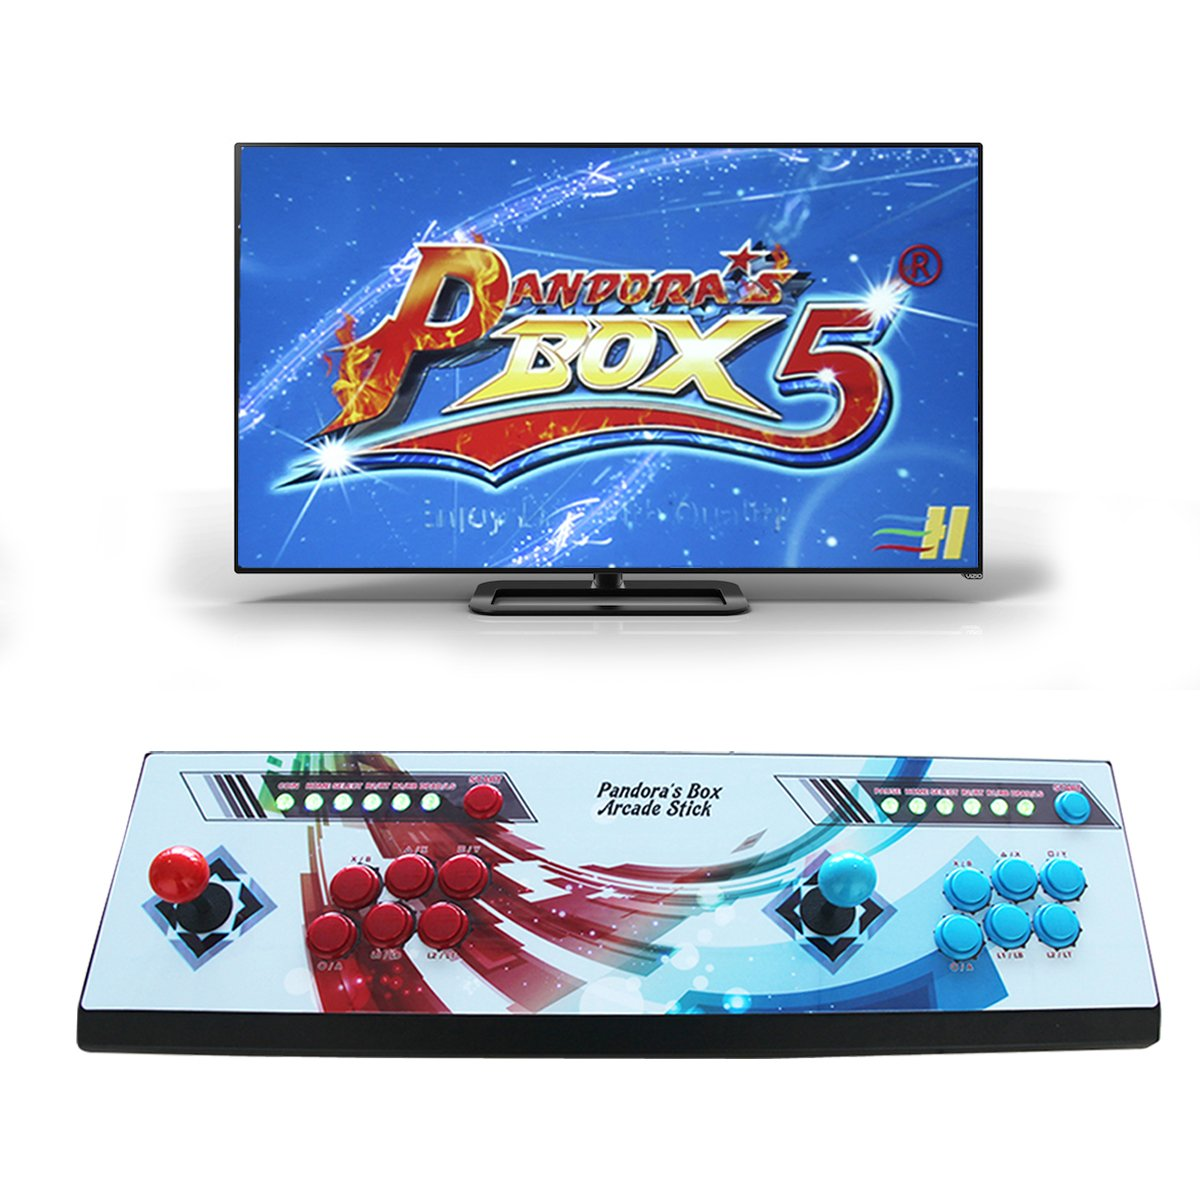 Wisamic Real Pandora's Box 5 Arcade Video Game Console 960 Games with Customized Buttons, 1280x720 Full HD, Upgraded CPU, etc Support PS3 PC TV 2 Players